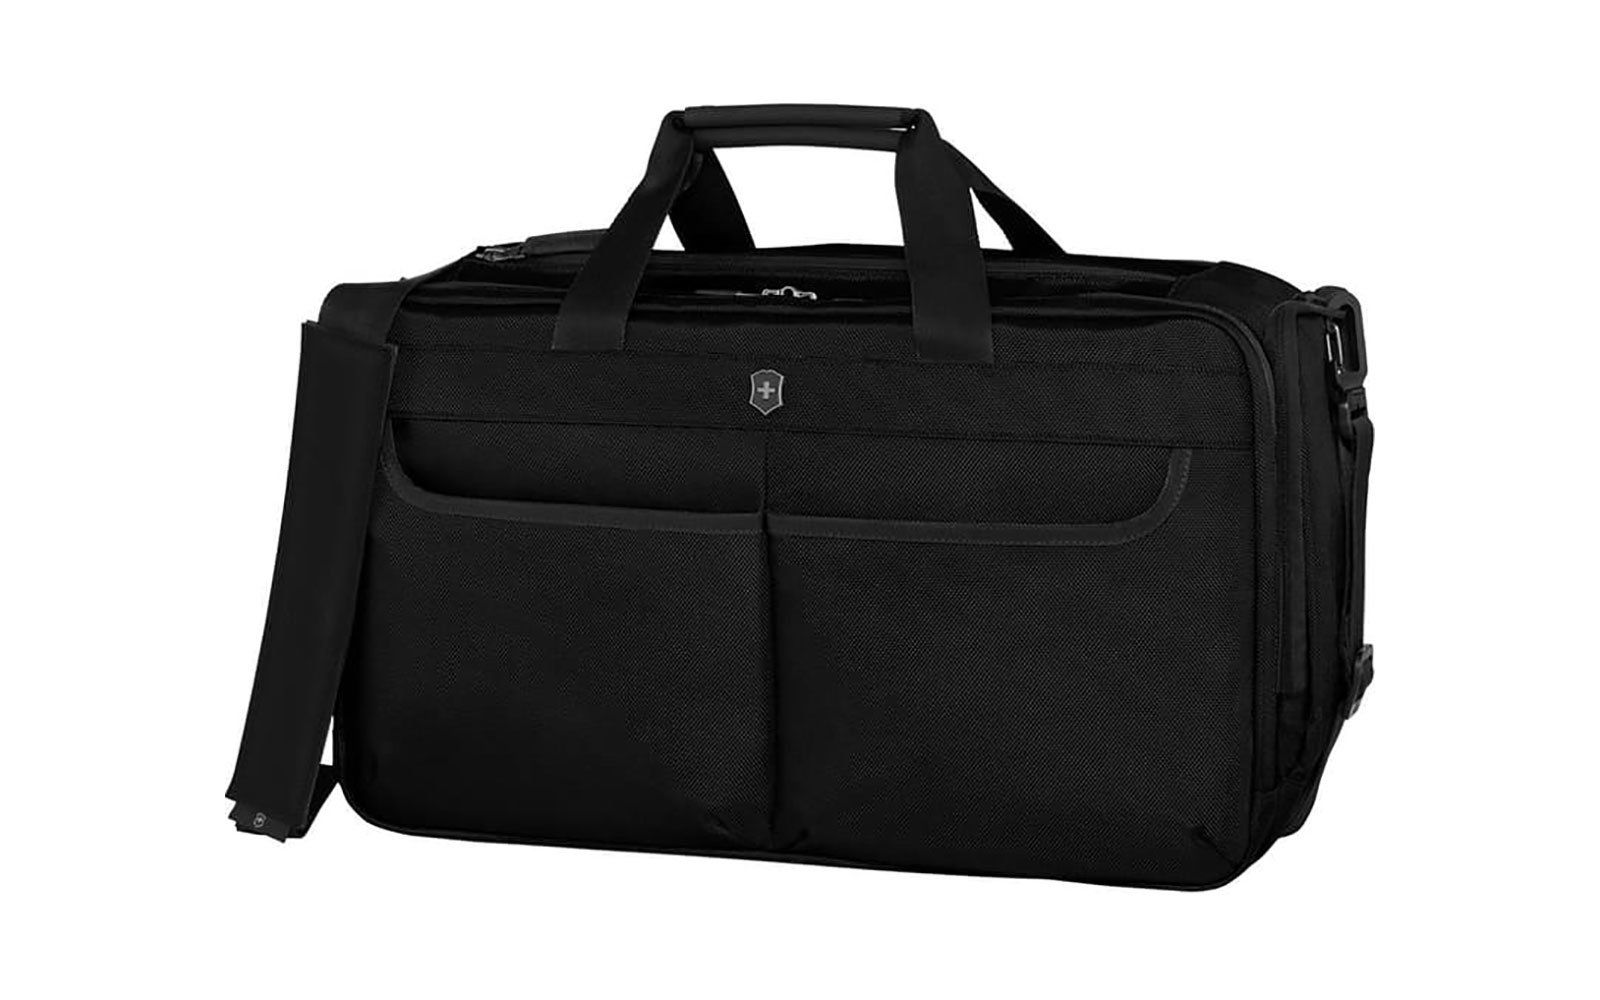 WT 5.0 Duffel Bag VICTORINOX SWISS ARMY